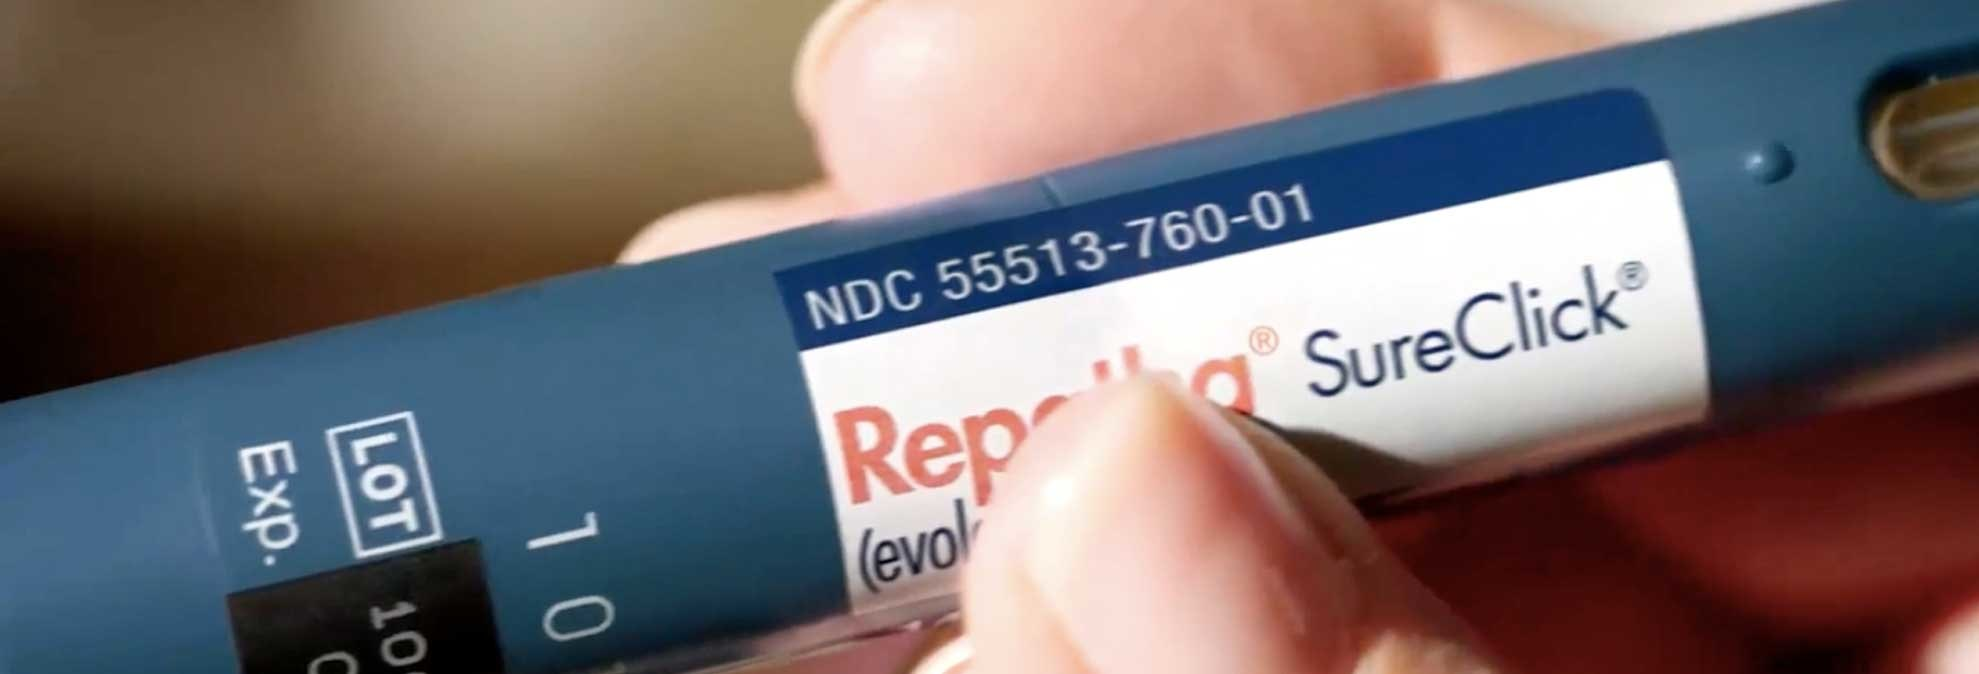 Mattresses Consumer Reports What You Need to Know About the Heart Drug Repatha - Consumer Reports